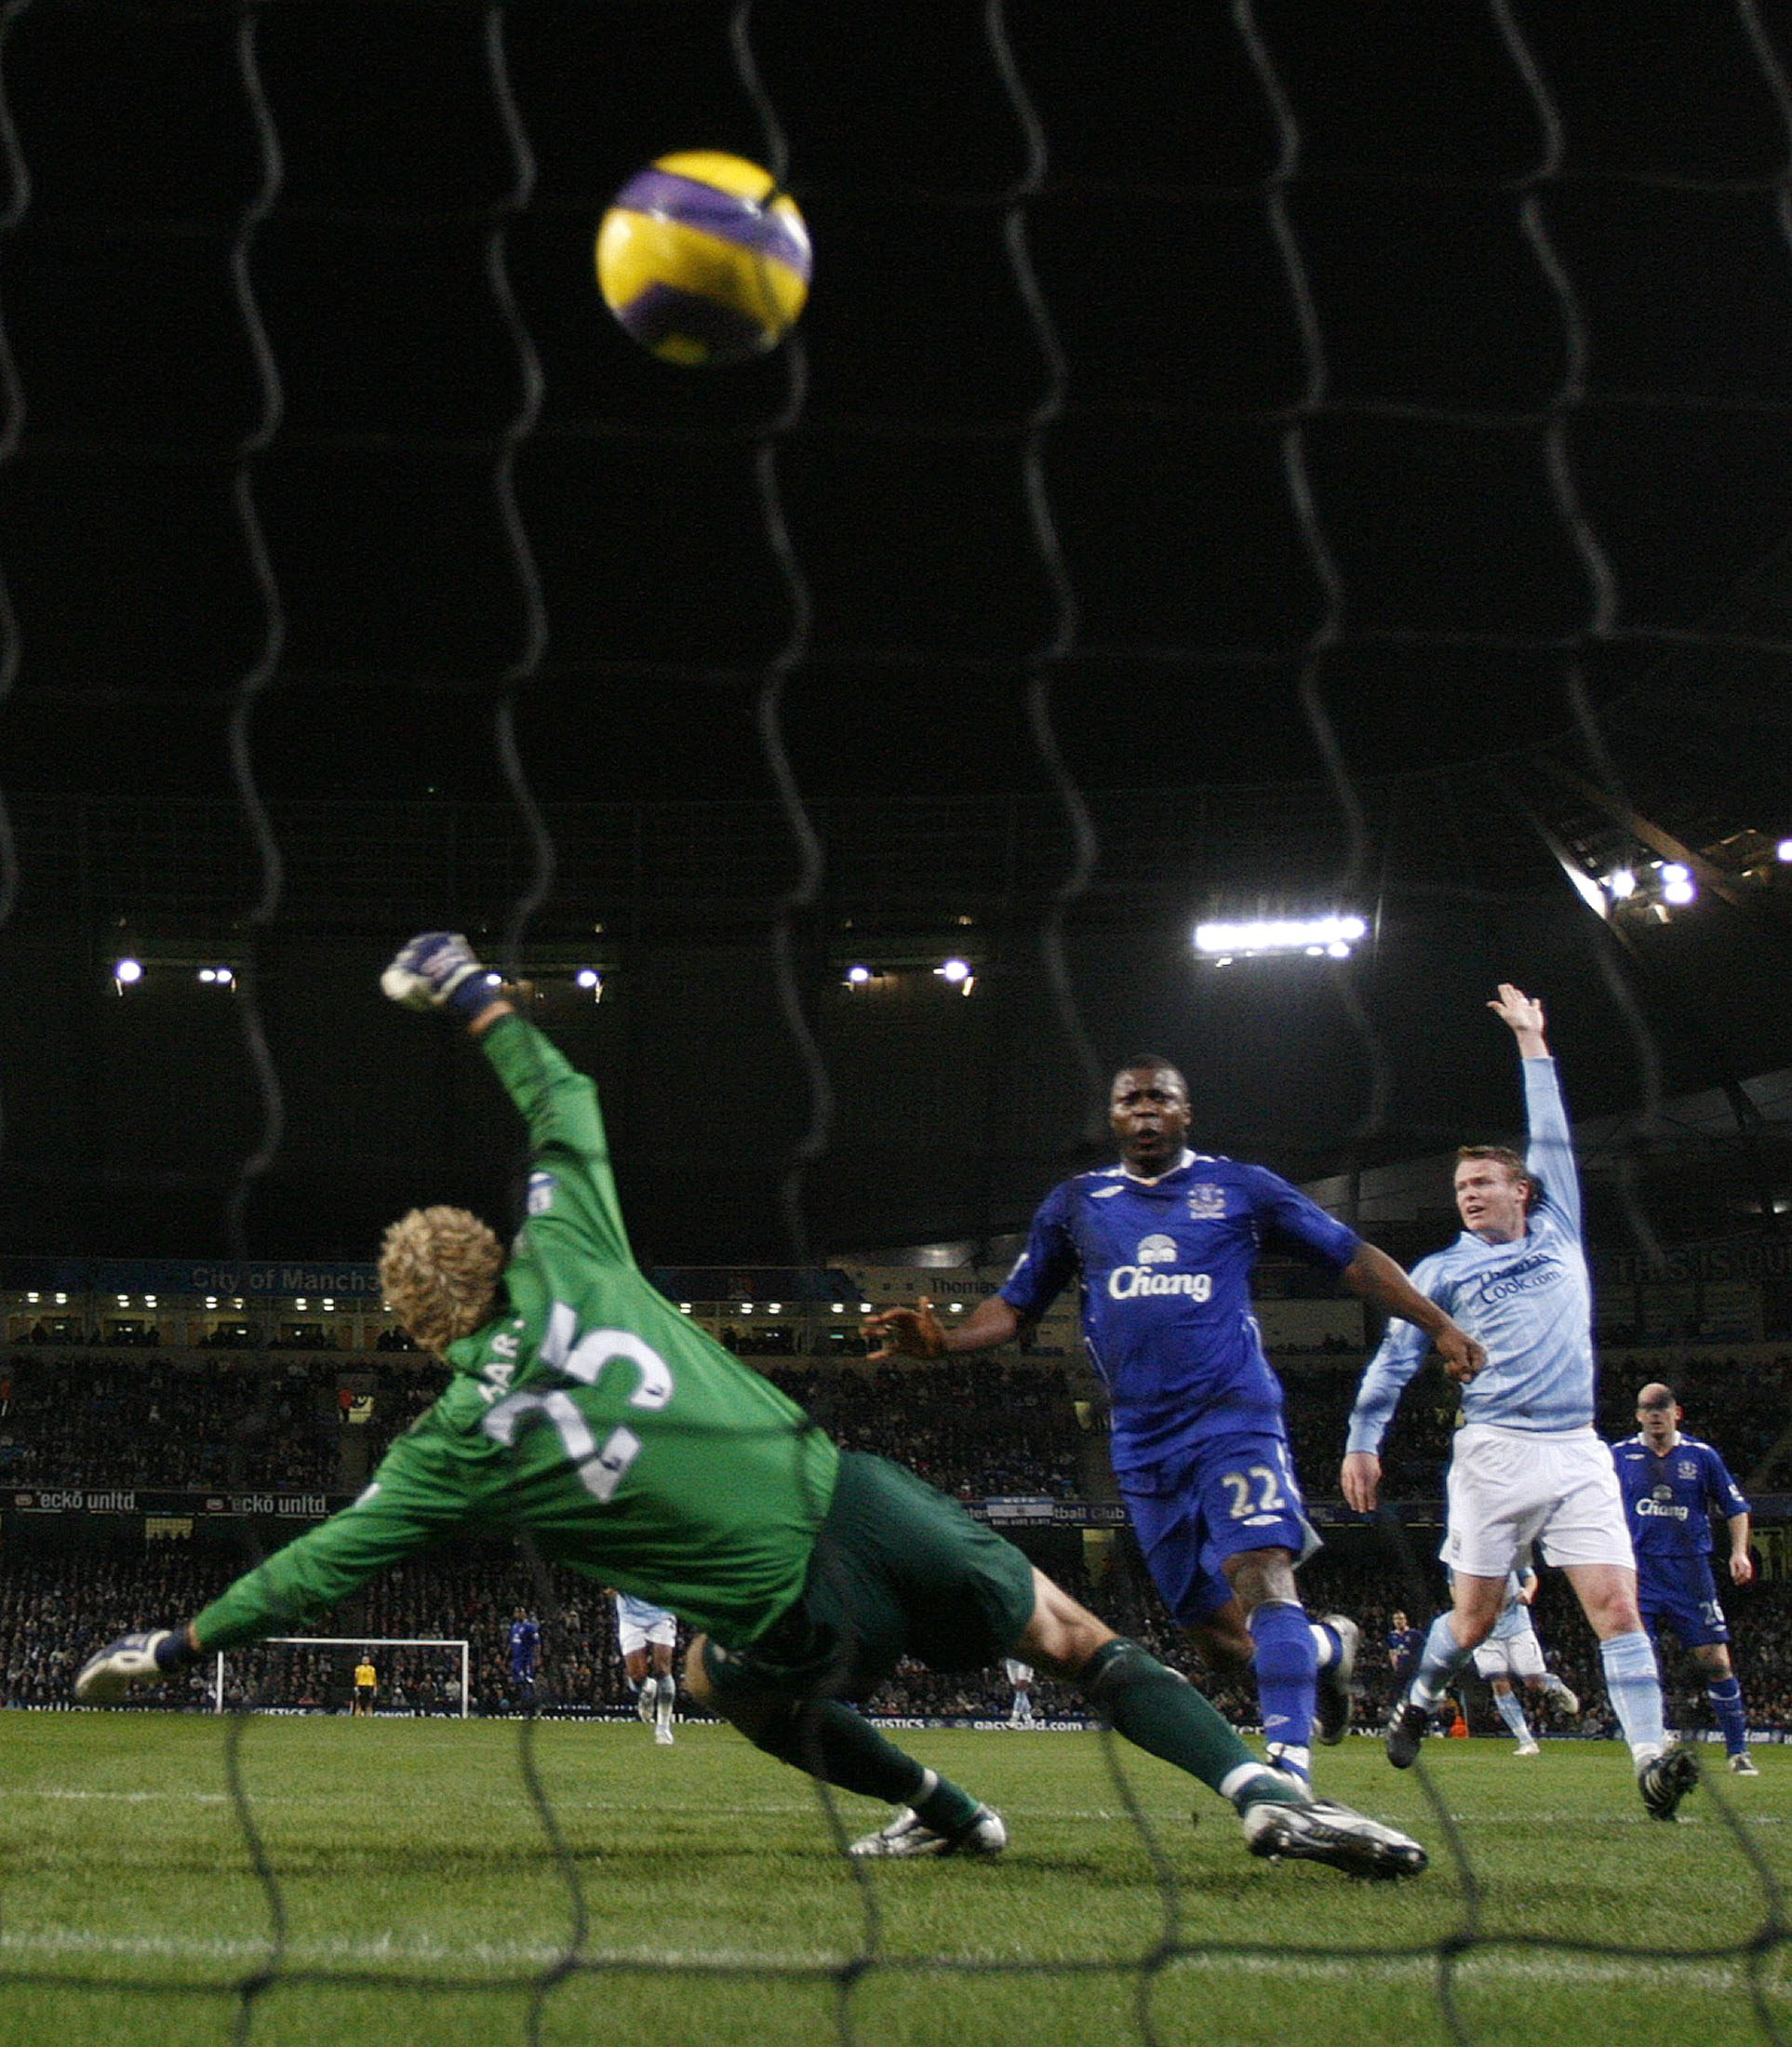 Everton's Ayegbeni Yakudu, center, scores past Manchester City's Joe Hart, left, during their English Premier League soccer match at the City of Manch...